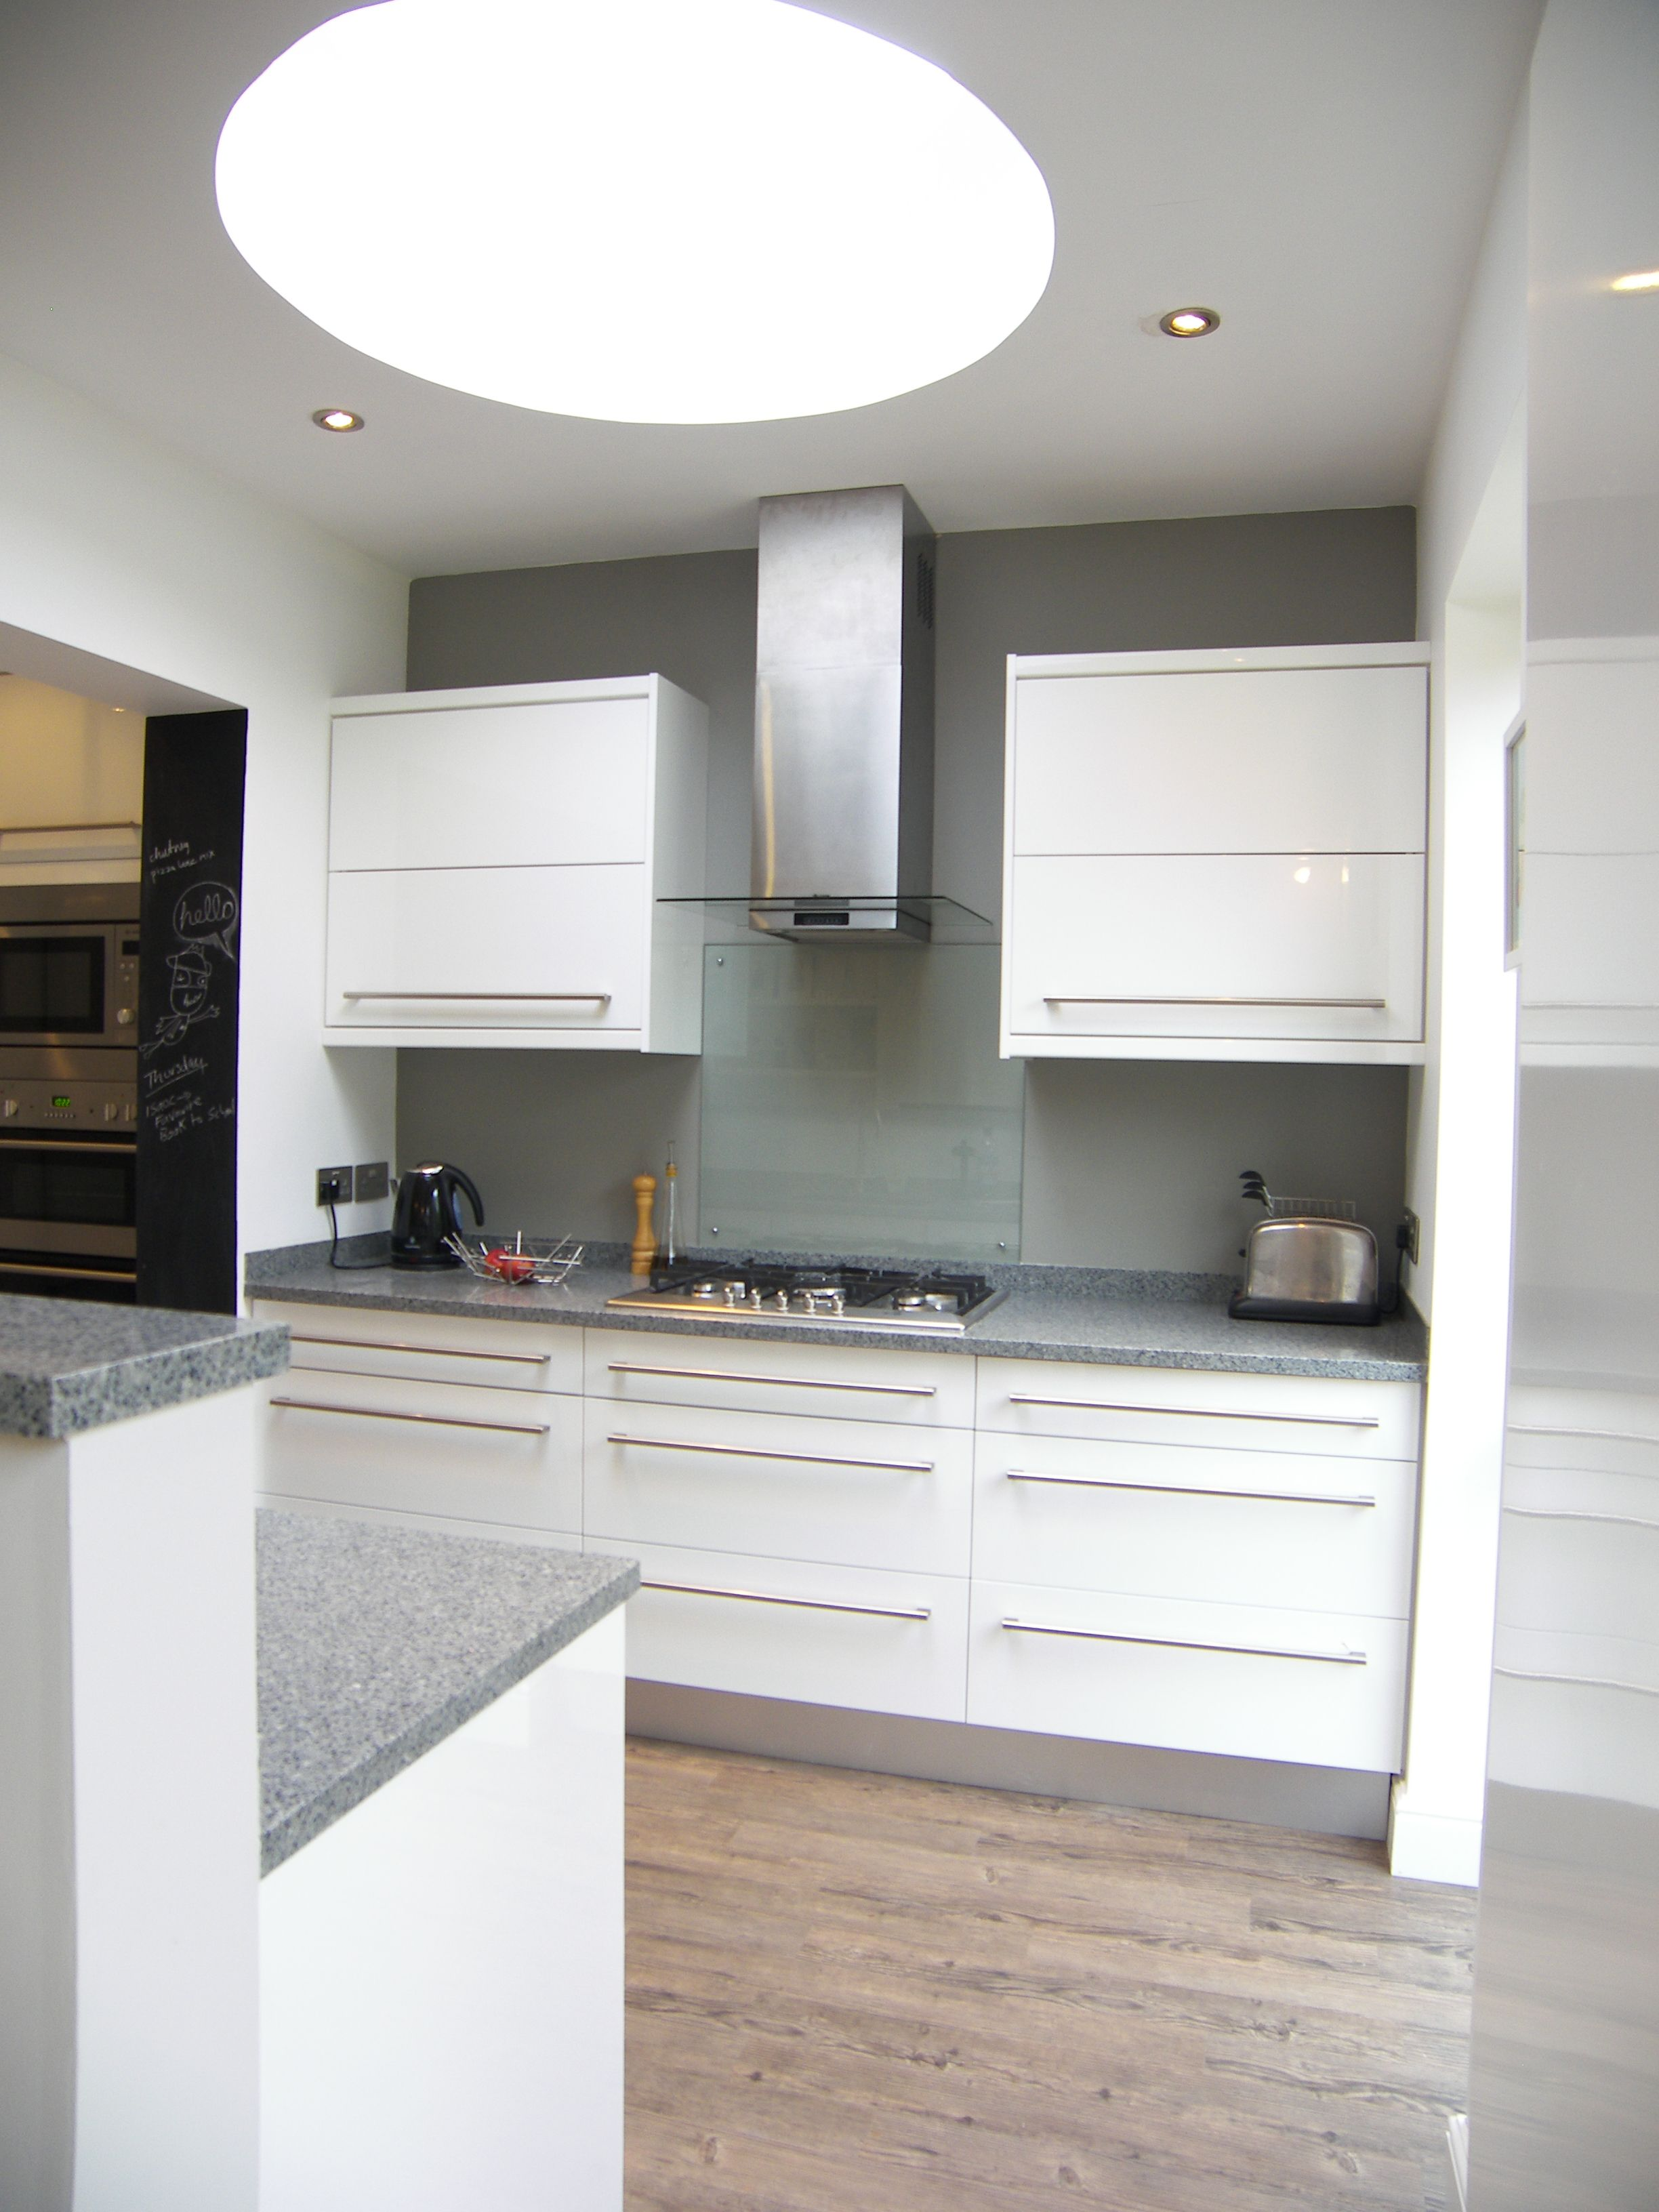 House remodeling in Henleaze- Kitchen island and open plan space by DHV architects.